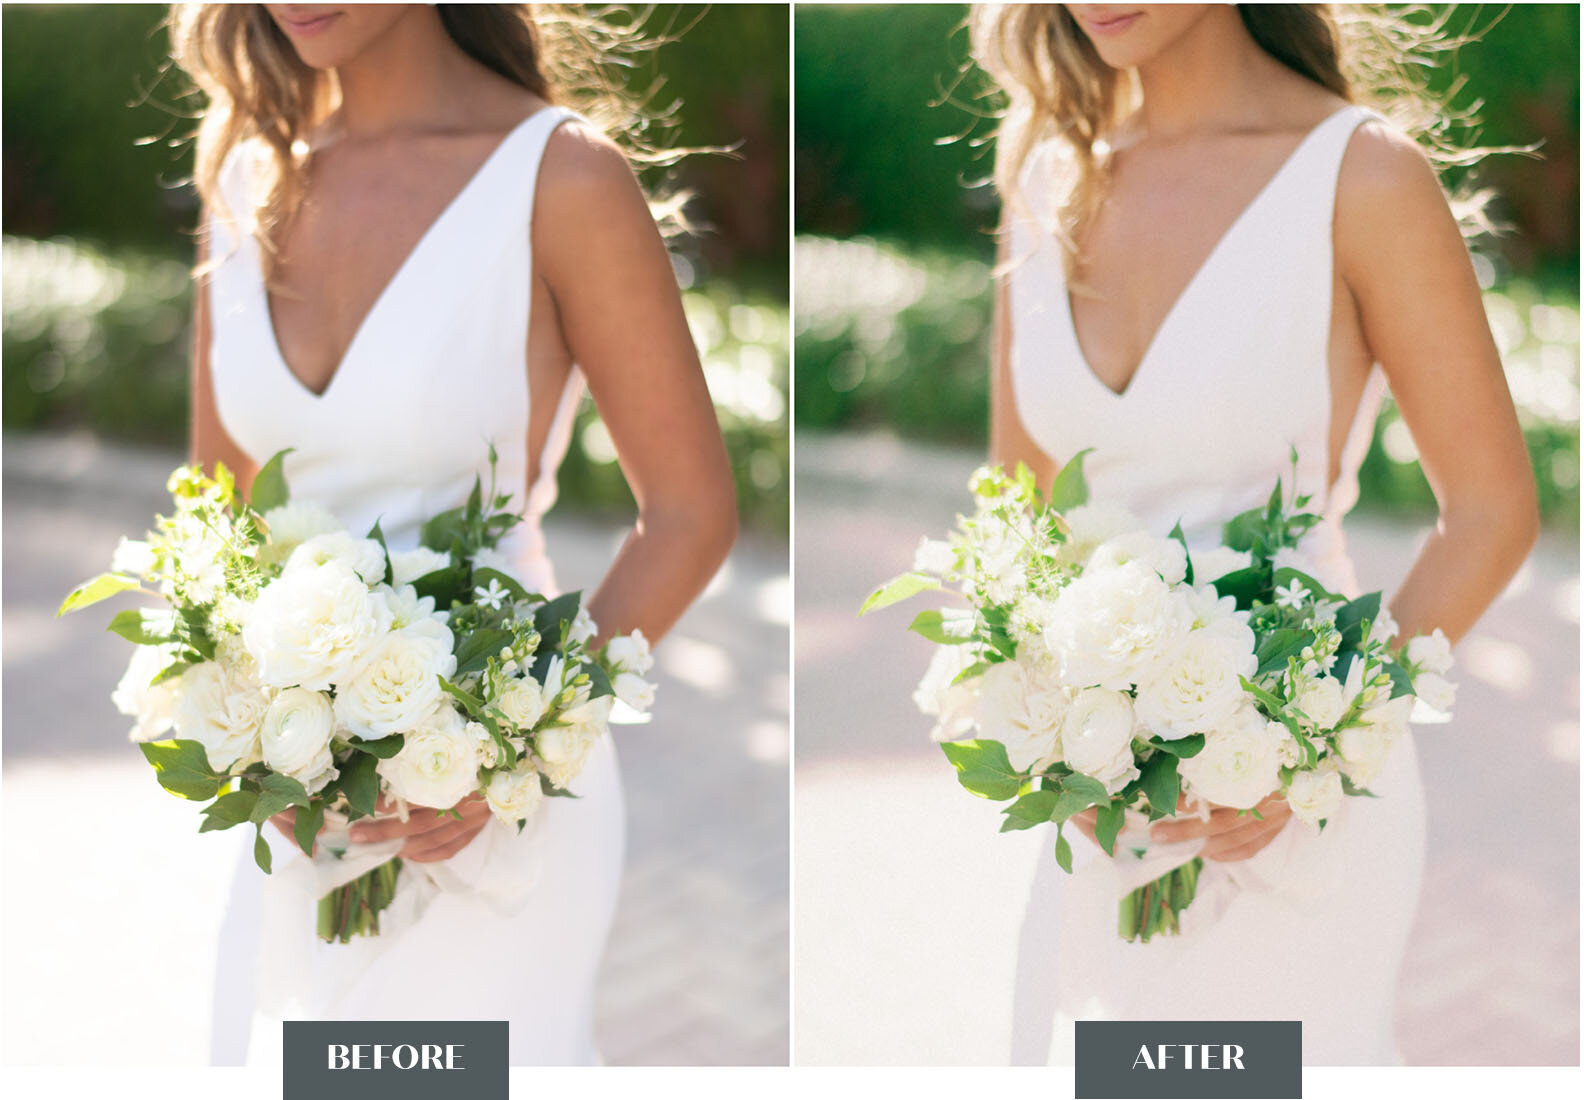 goodlight presets before after color pack 1 - 10.jpg